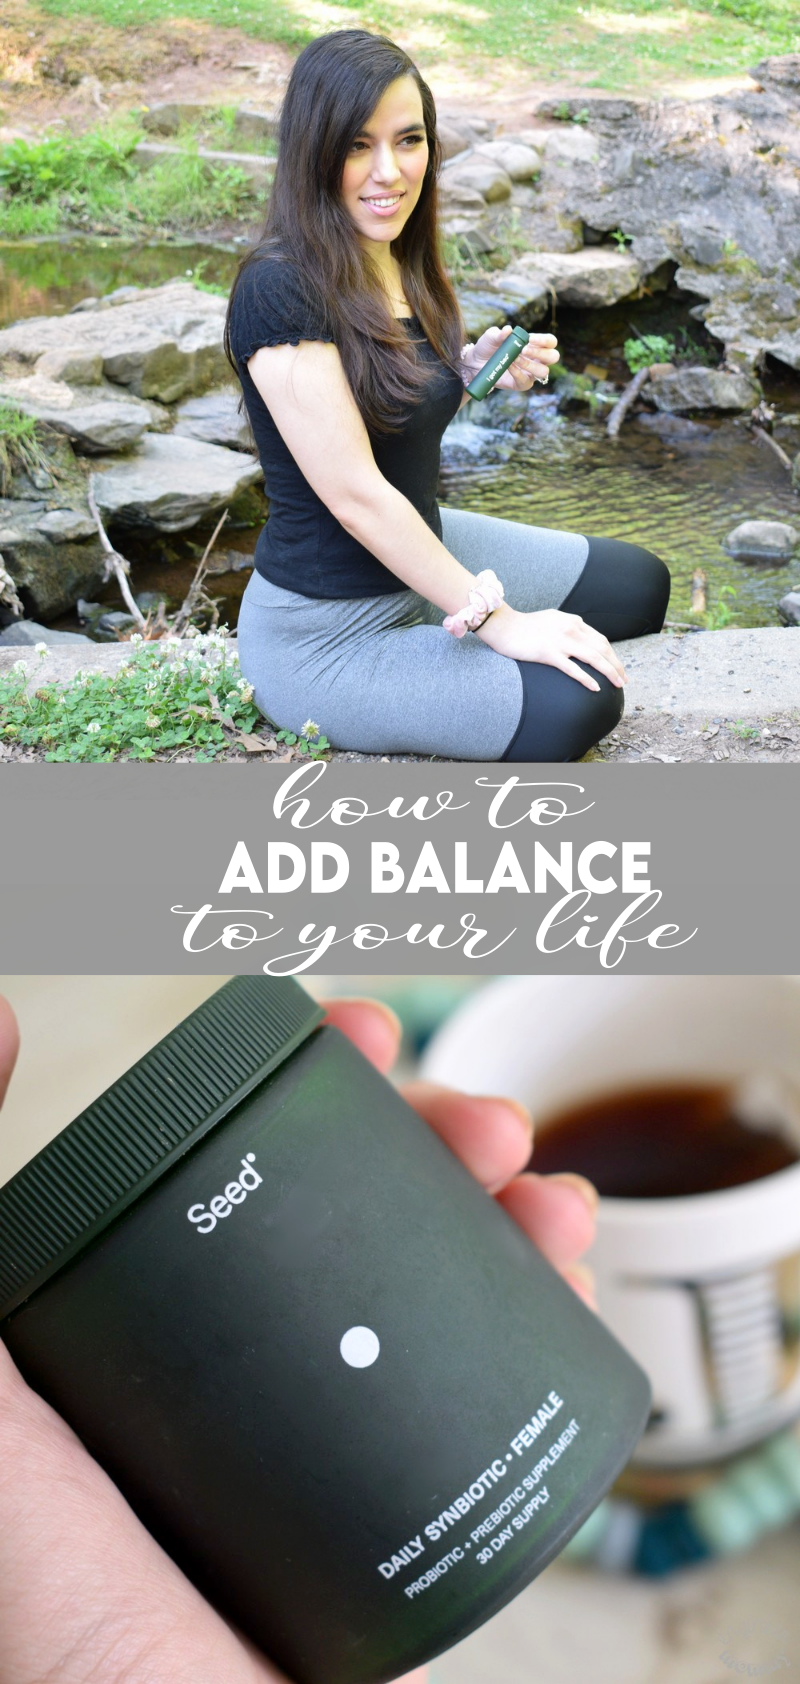 5 Smart Ways to Add Balance to your Life